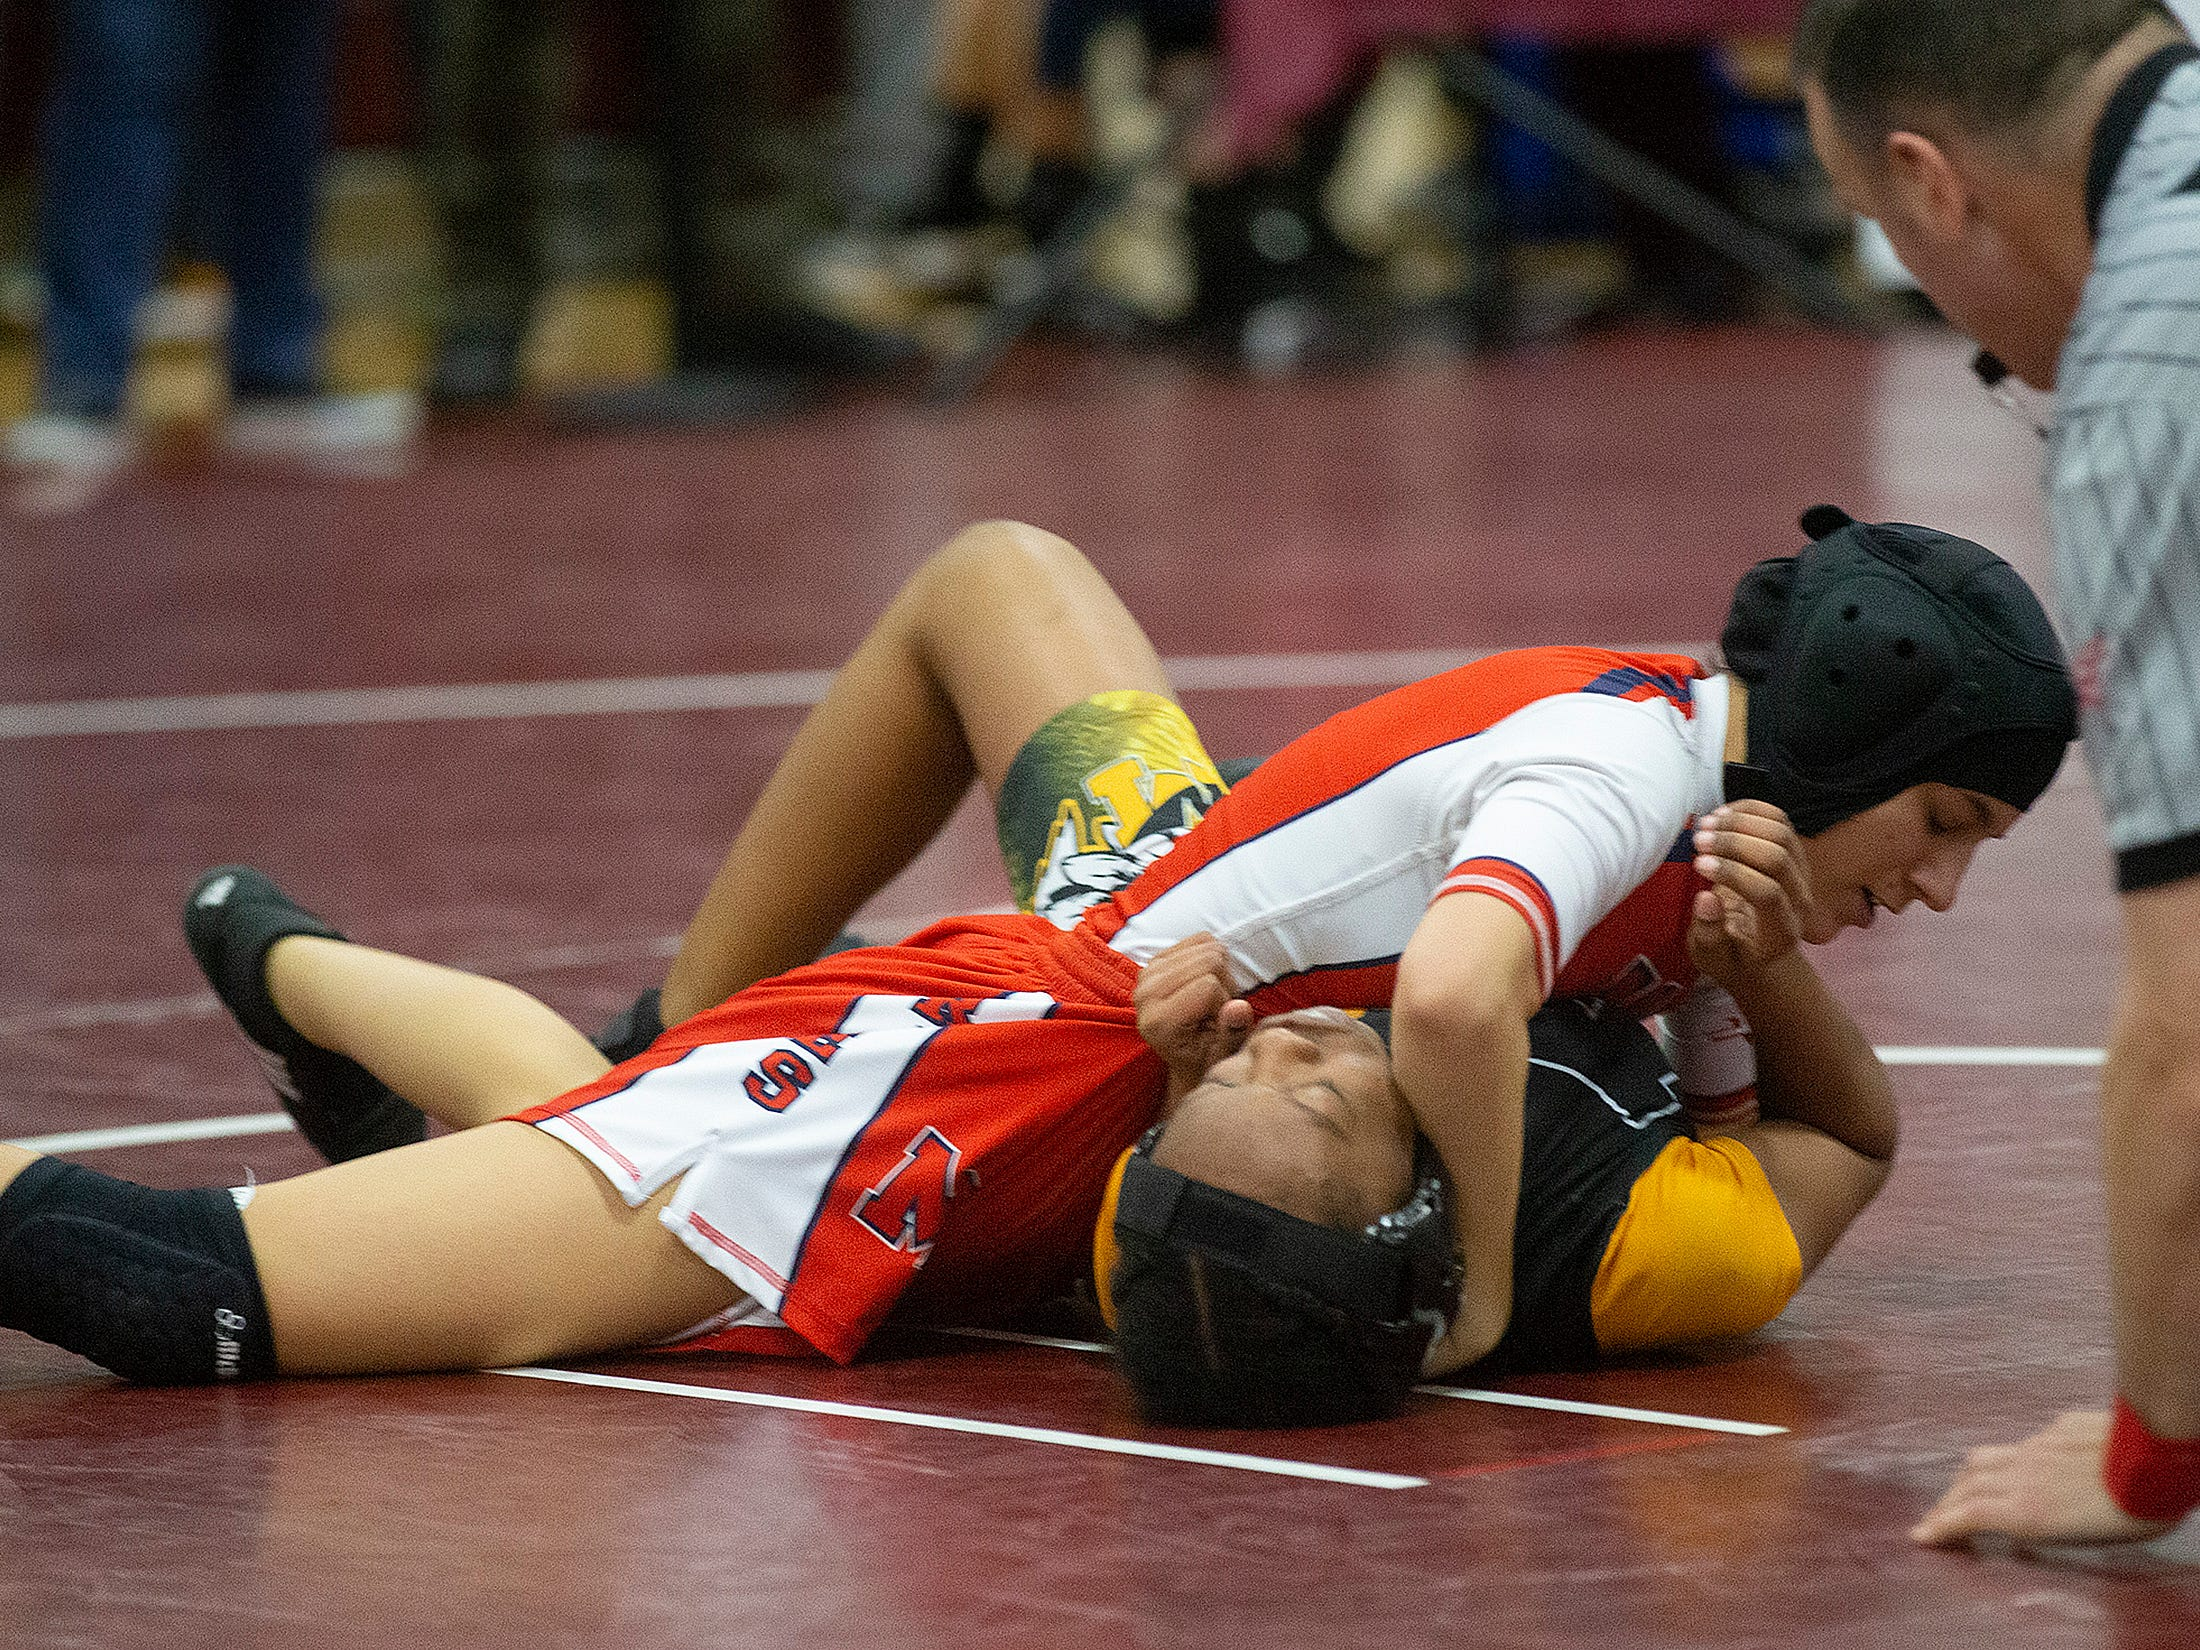 Manalapan's Julia Manolas looks for back points in 105 lbs. match against Monmouth Regional's Mya House. NJSIAA Girls Region Wrestling at Red Bank Regional High School in Red Bank NJ on February 17, 2019.